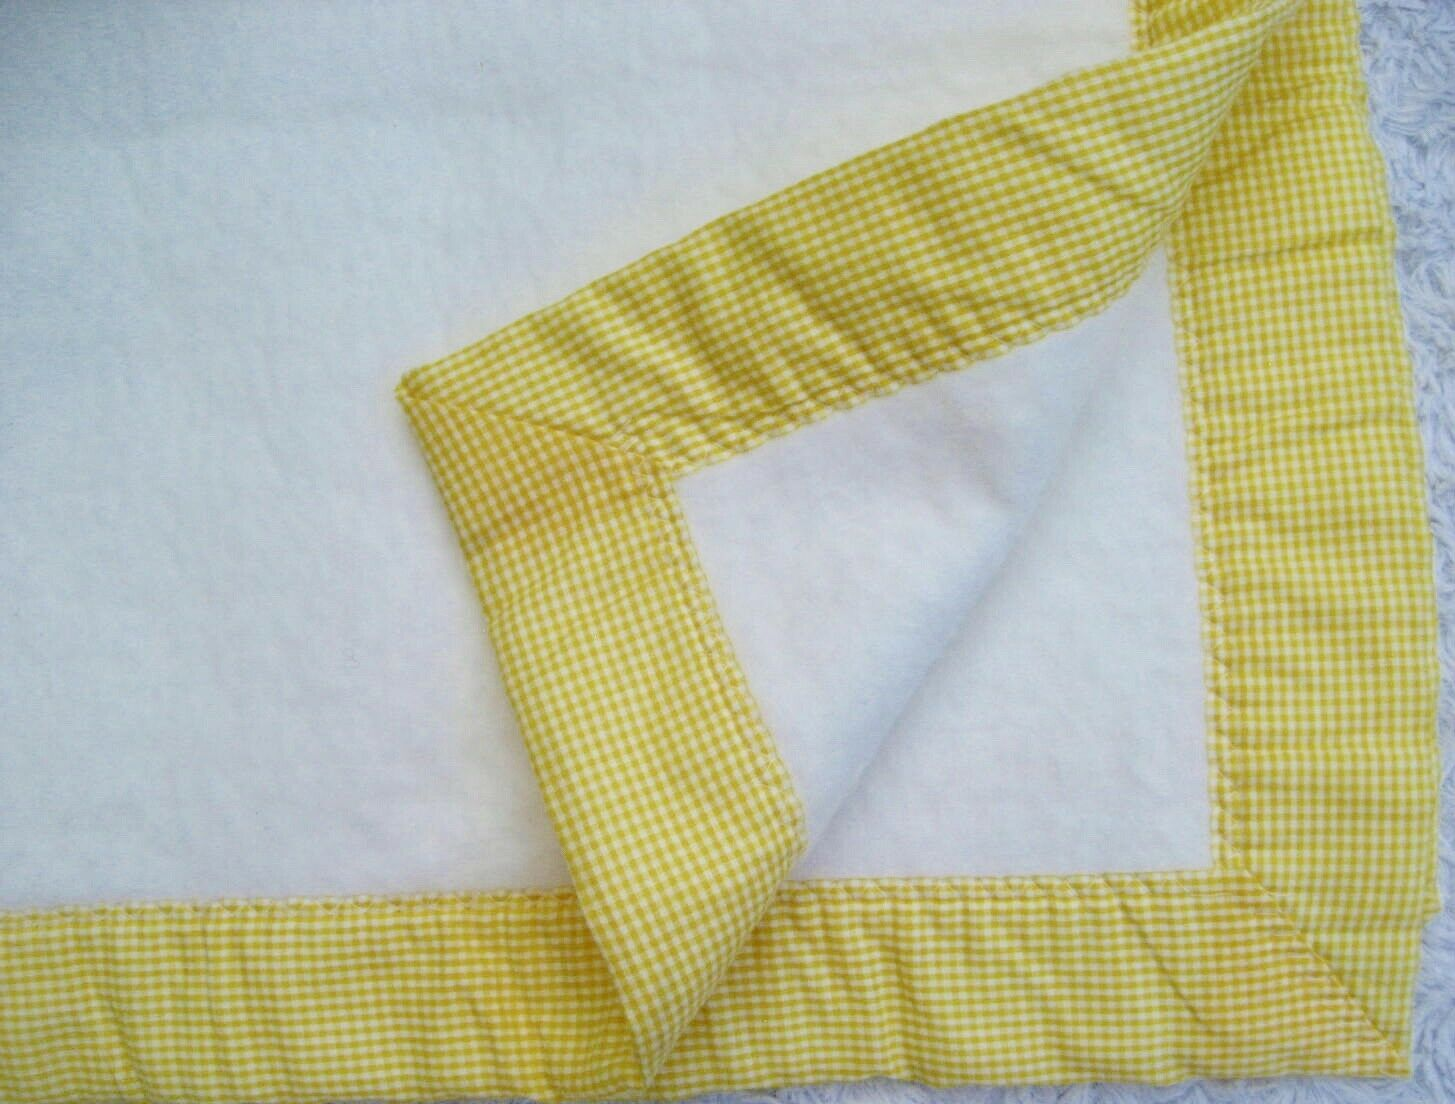 Primary image for VTG Baby Blanket Circus Carousel Applique Gingham Edge Quiltex USA 1970s ILGWU